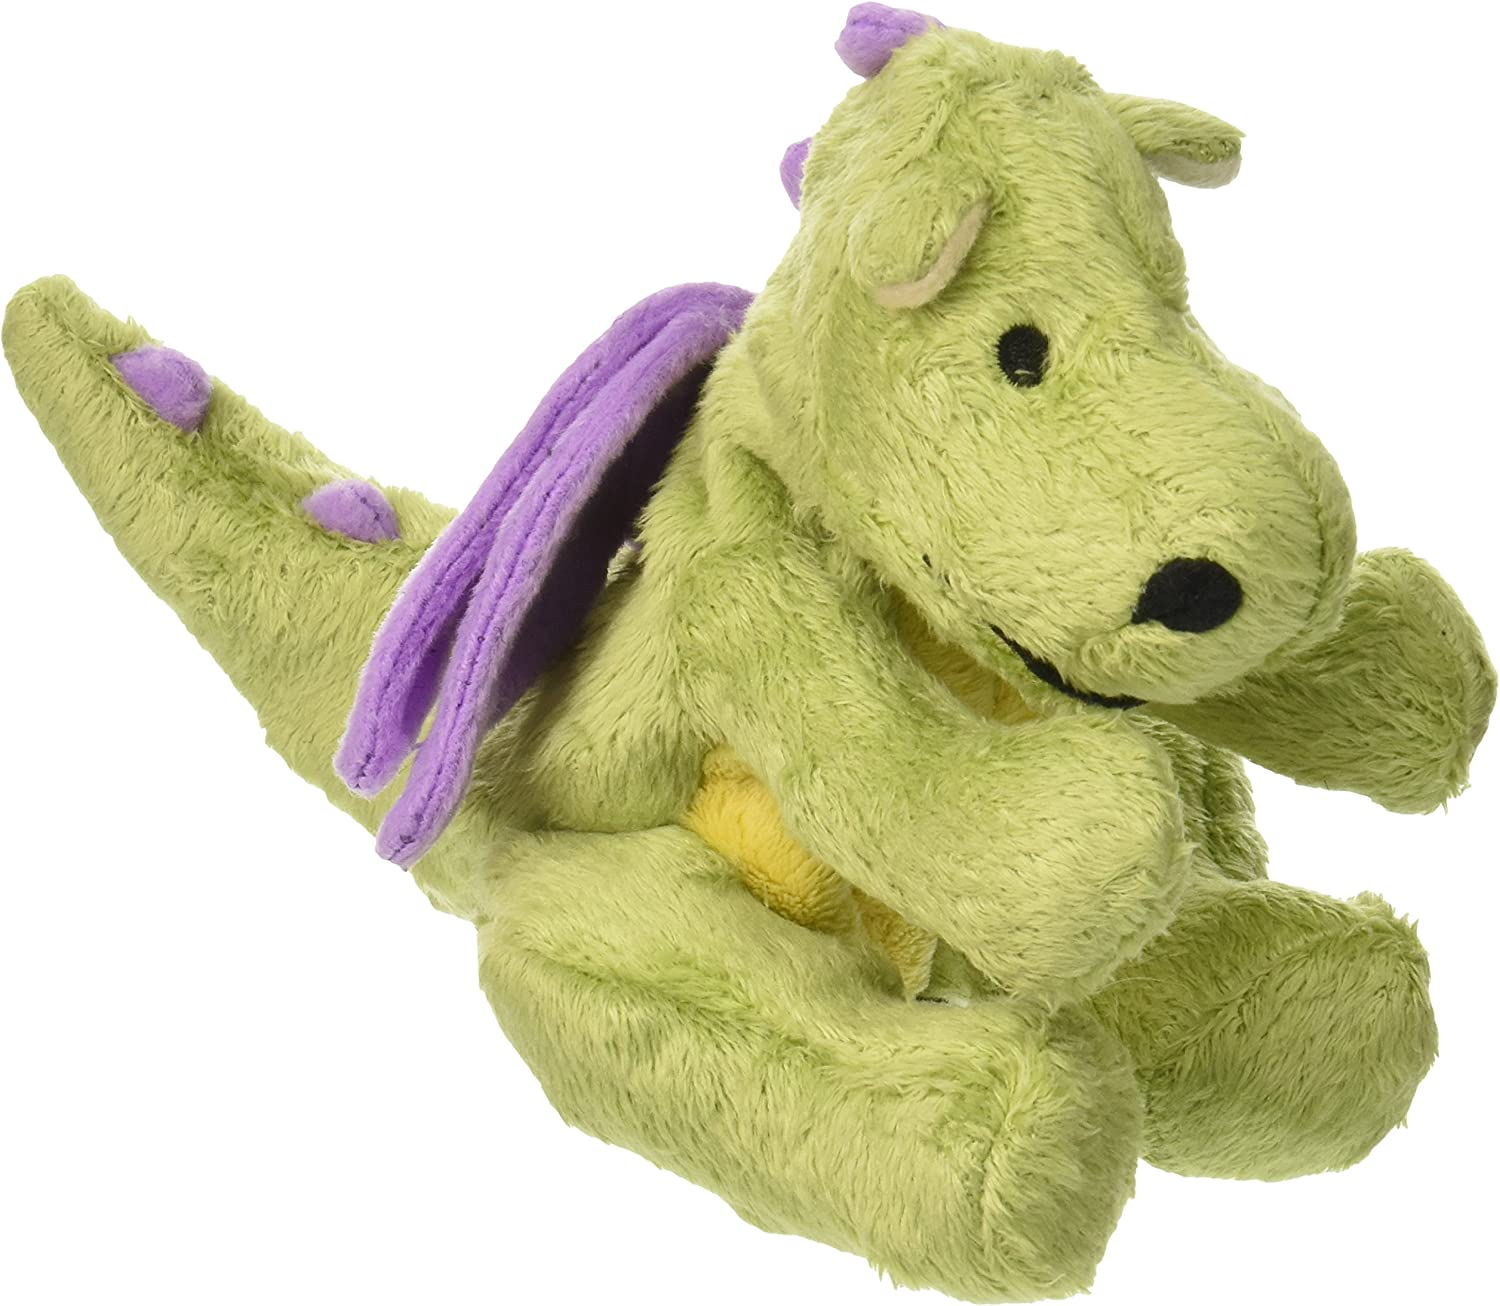 Baby Dragon (Pack of 3)